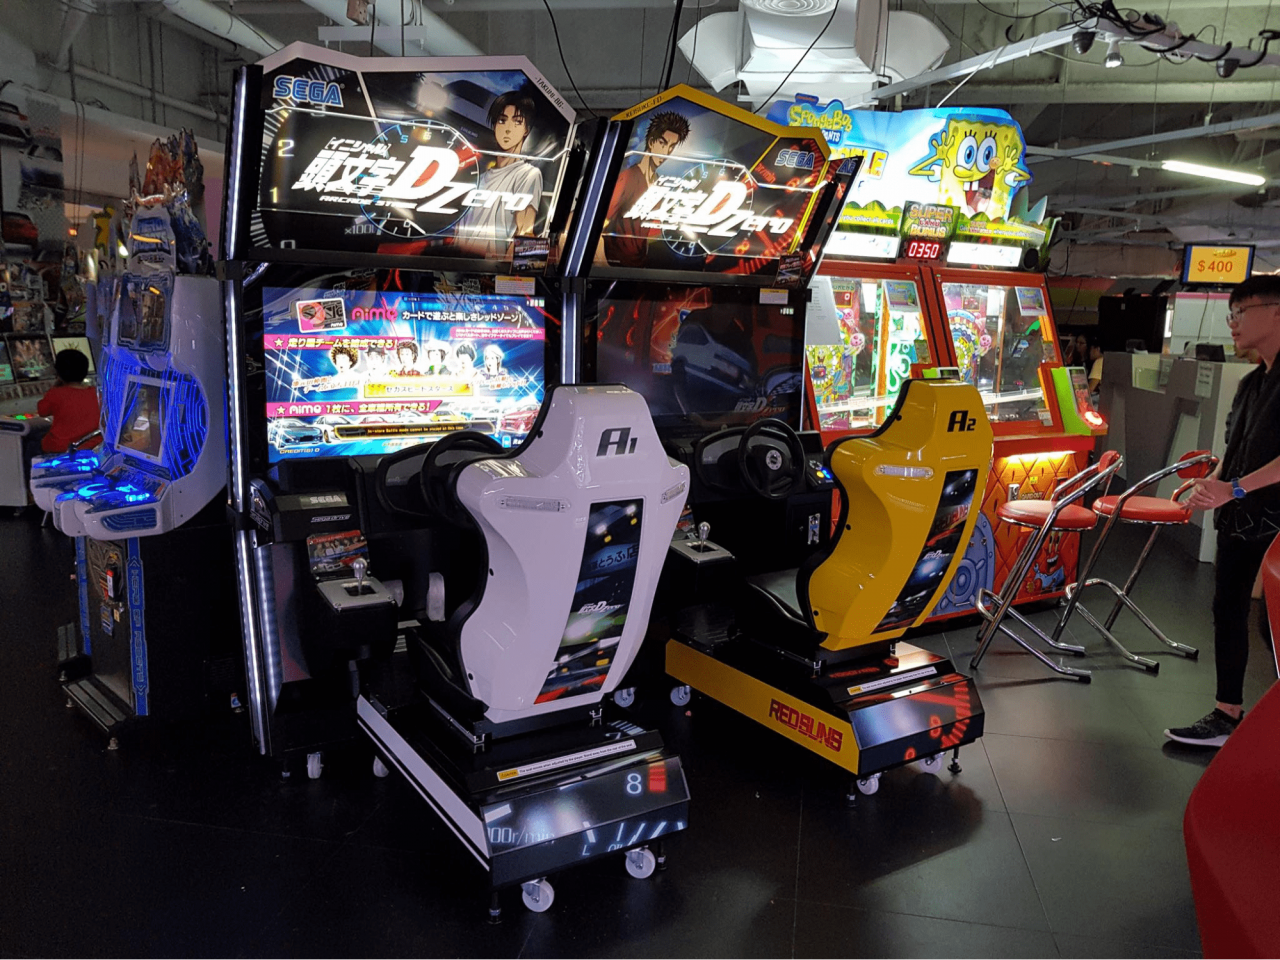 9 Arcades In Singapore With Your Fave Games Like Daytona